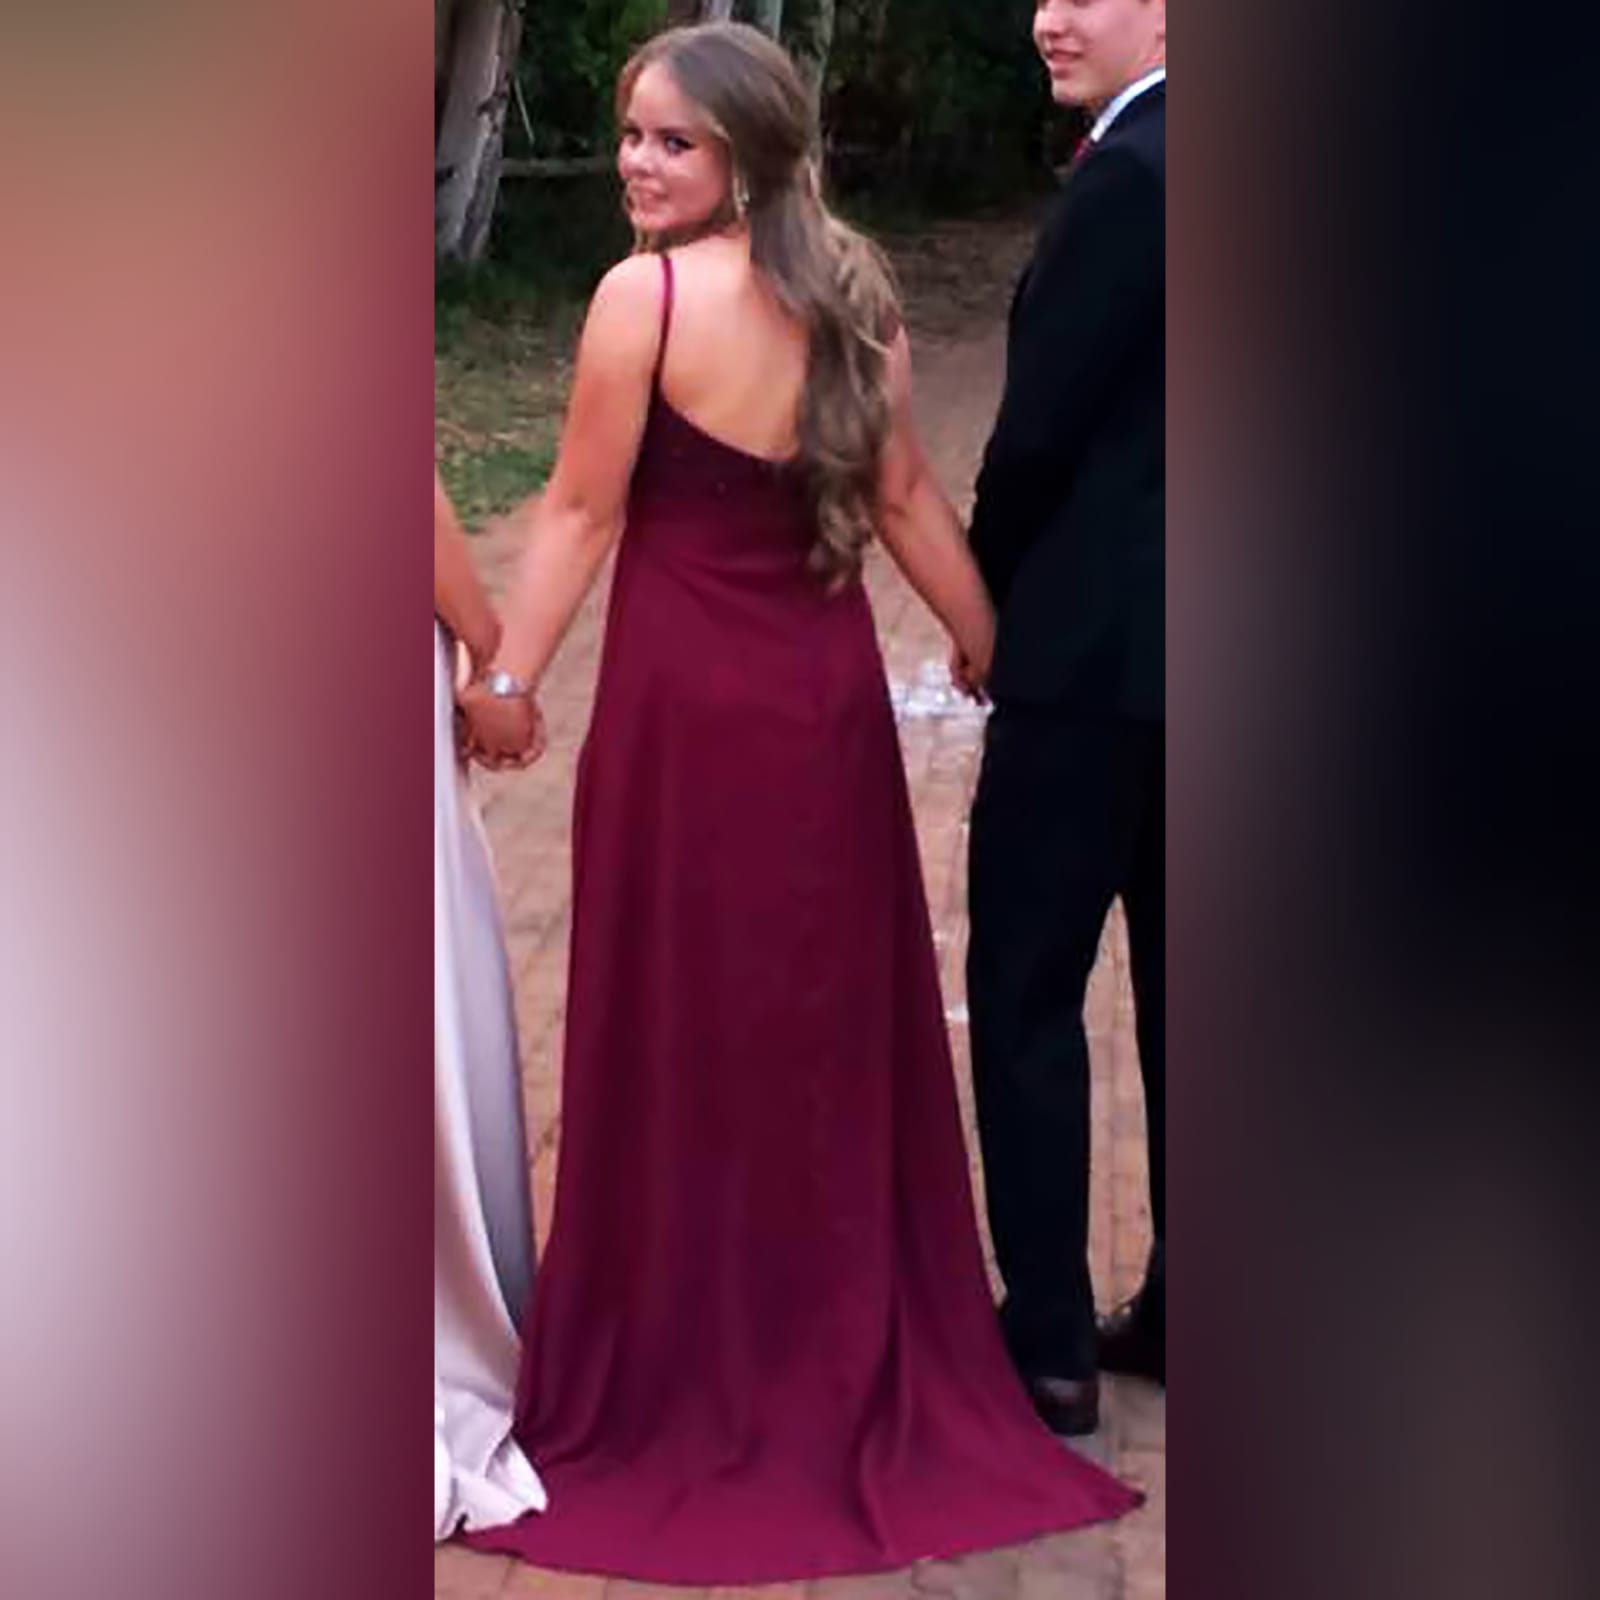 Burgundy plunging neckline long prom dress 1 burgundy plunging neckline long matric dance dress with a slit and a train. With a beaded bodice.